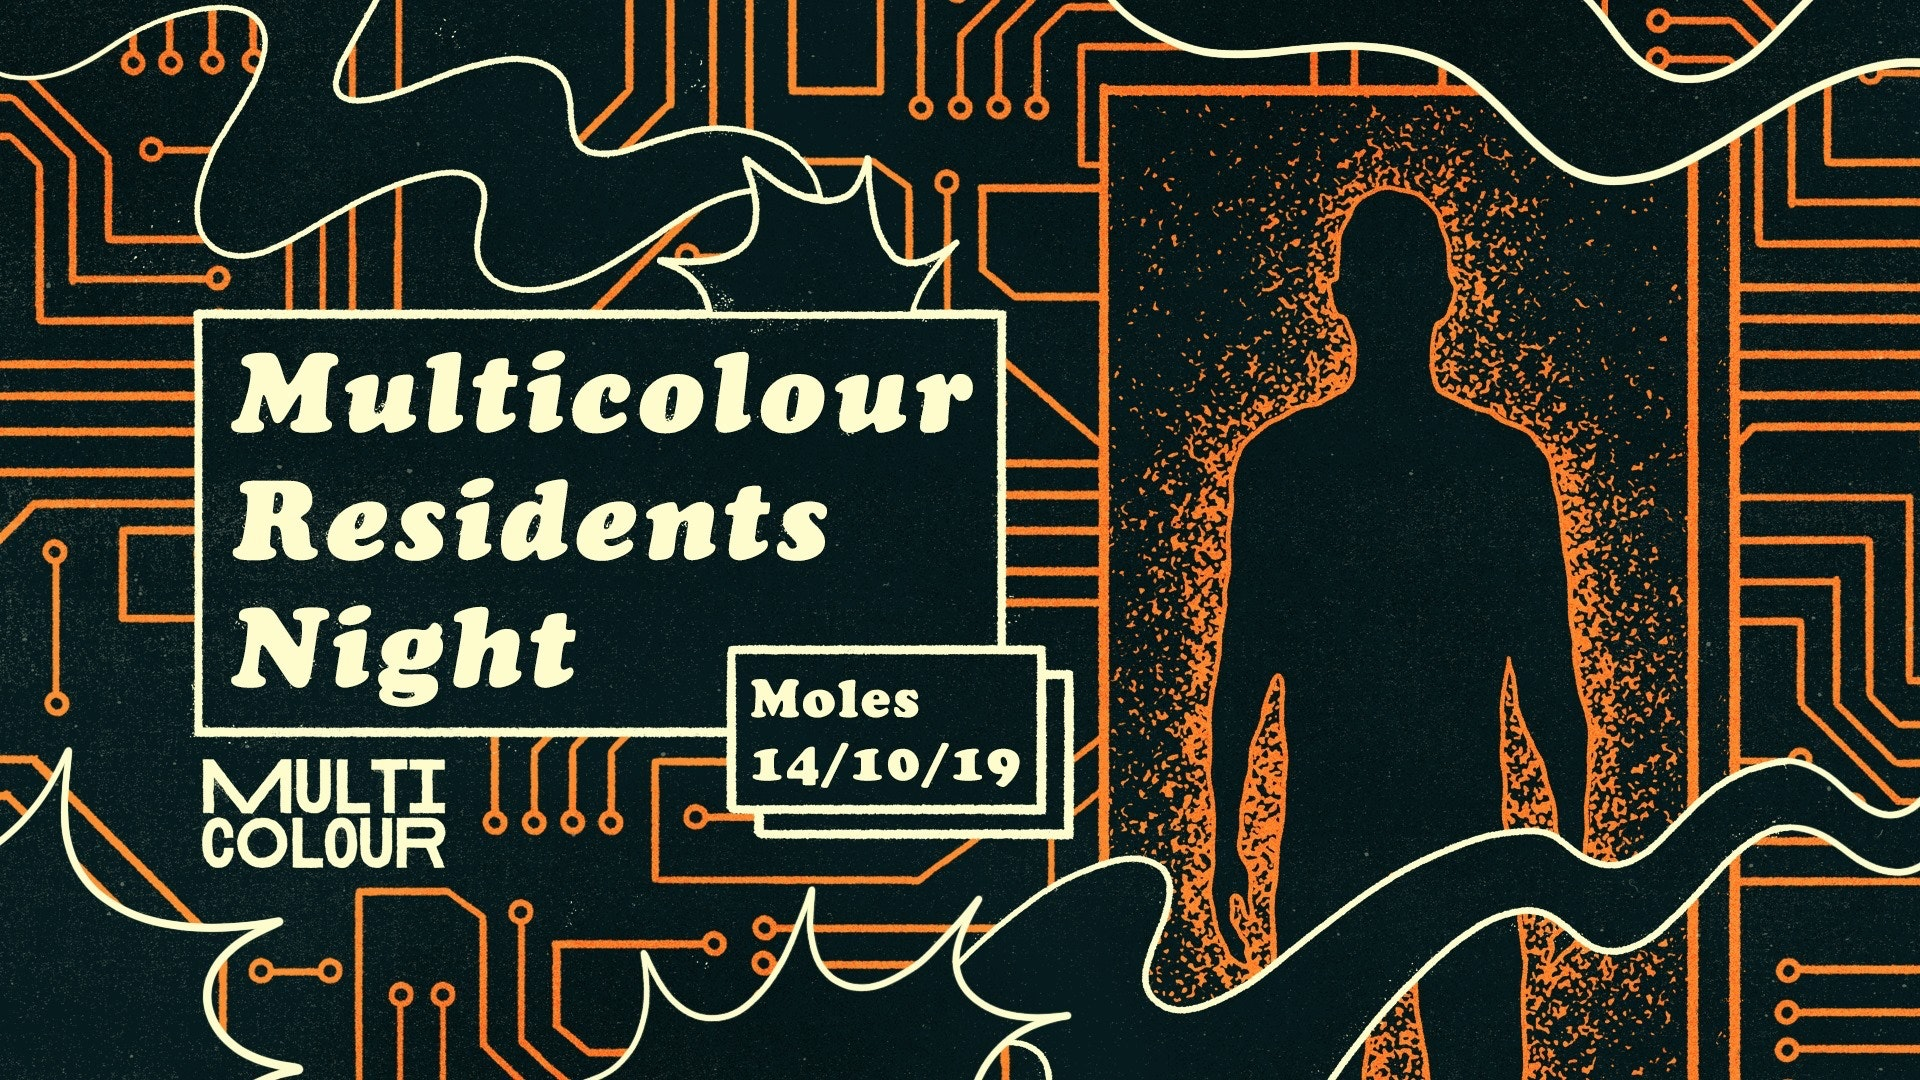 Multicolour: Residents Party